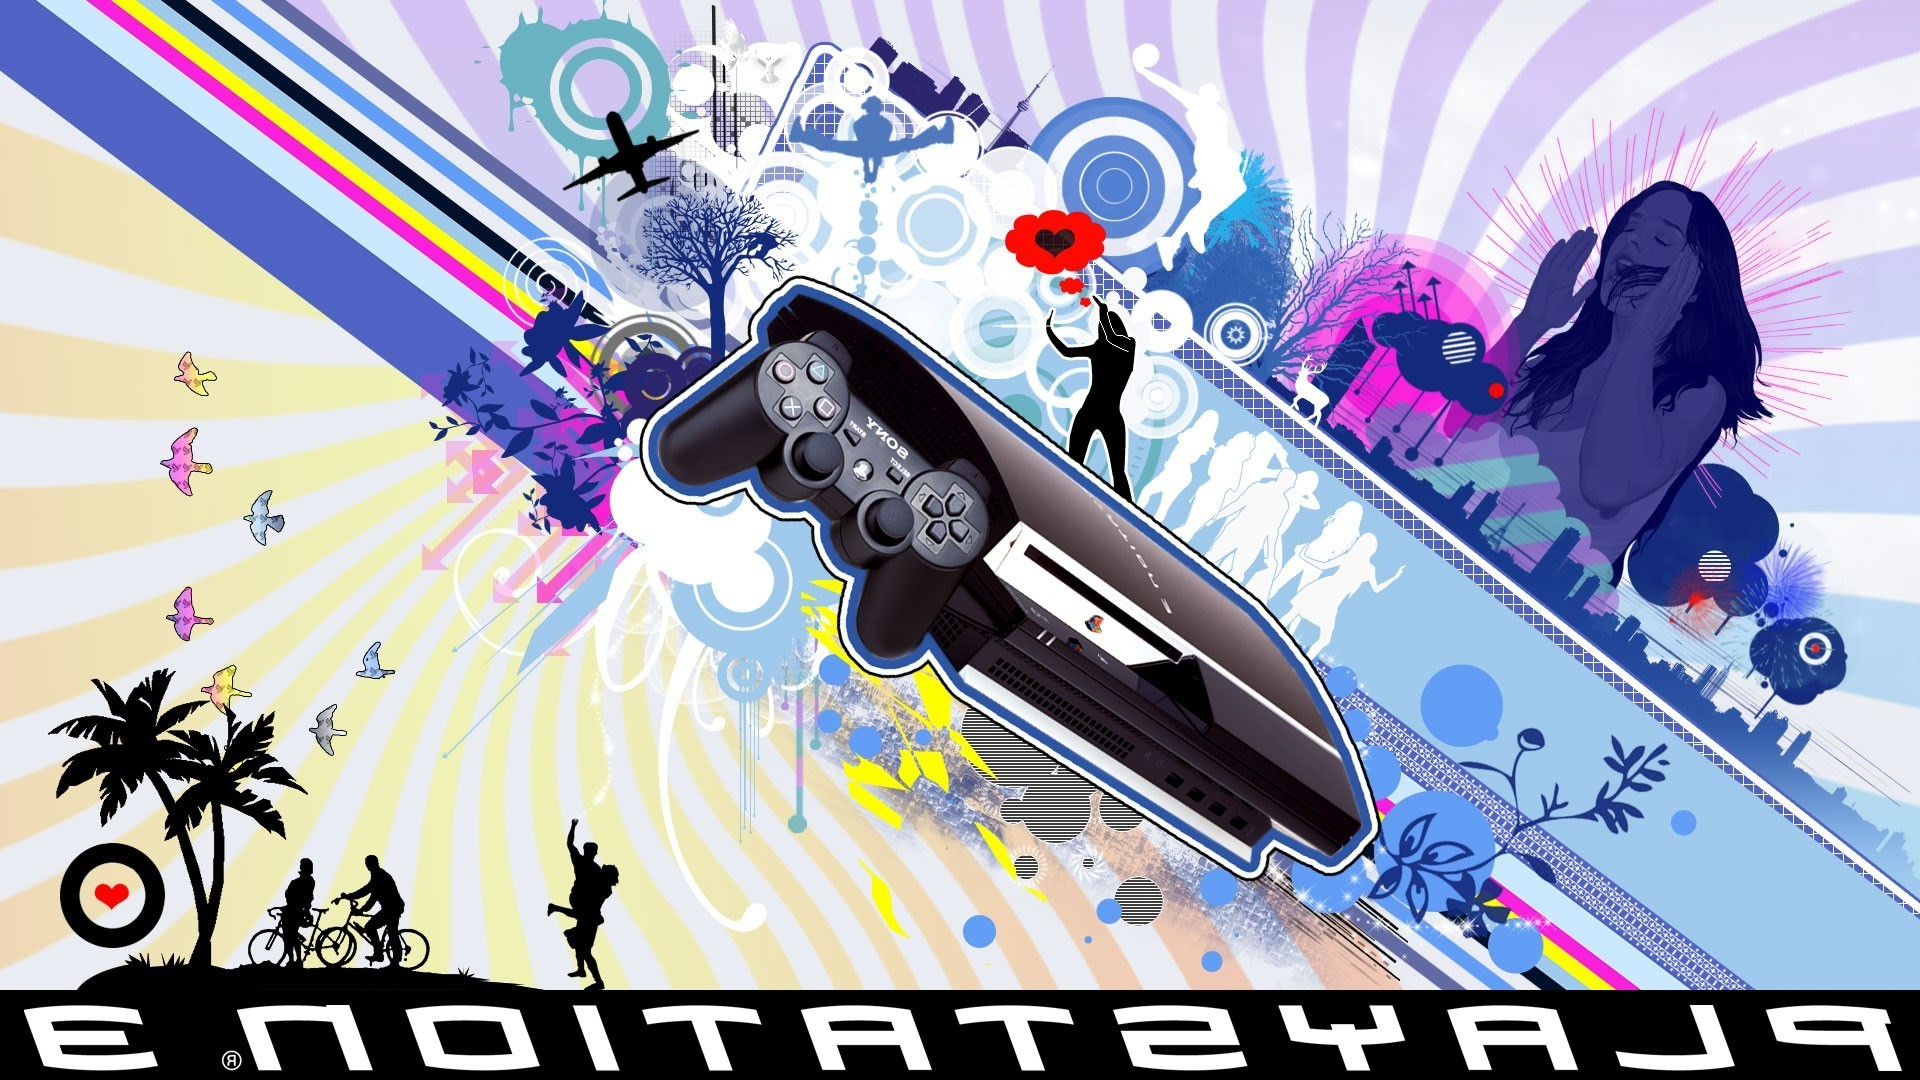 ... Ps3 wallpapers playstation hd · 0 · Download · 1920x1080 ...